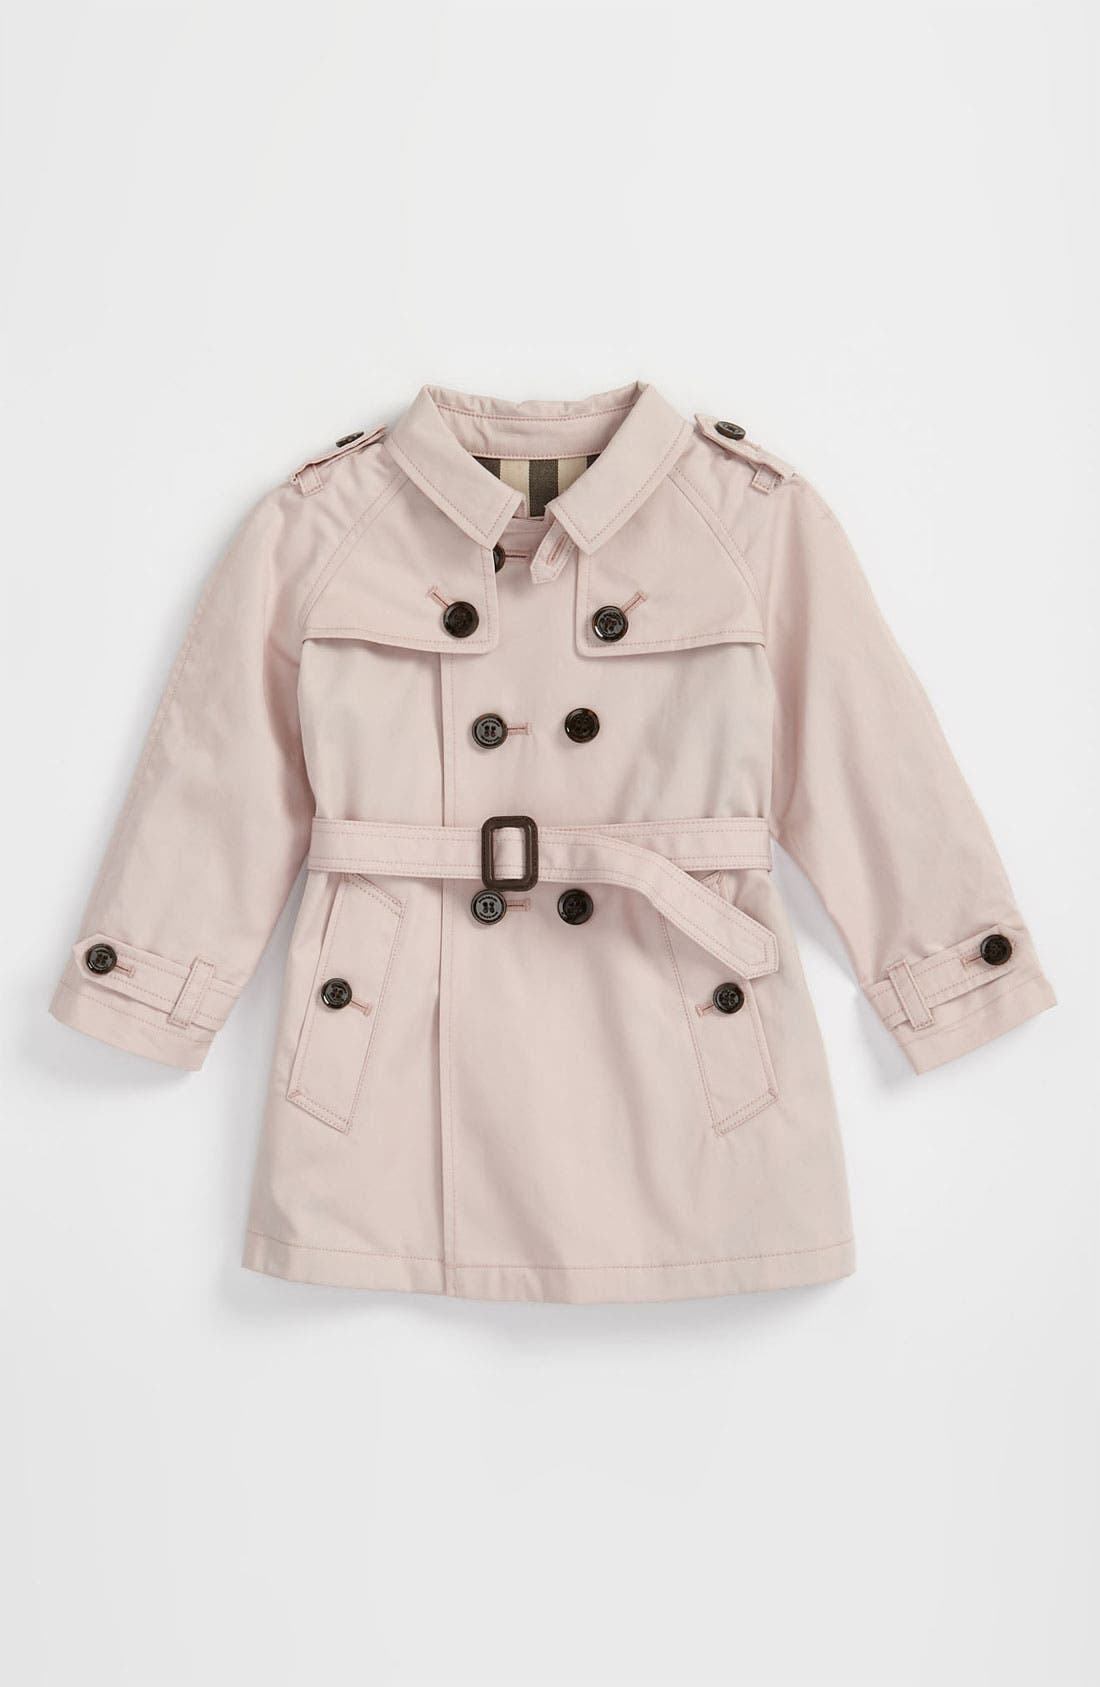 Alternate Image 1 Selected - Burberry Double Breasted Trench Coat (Infant)